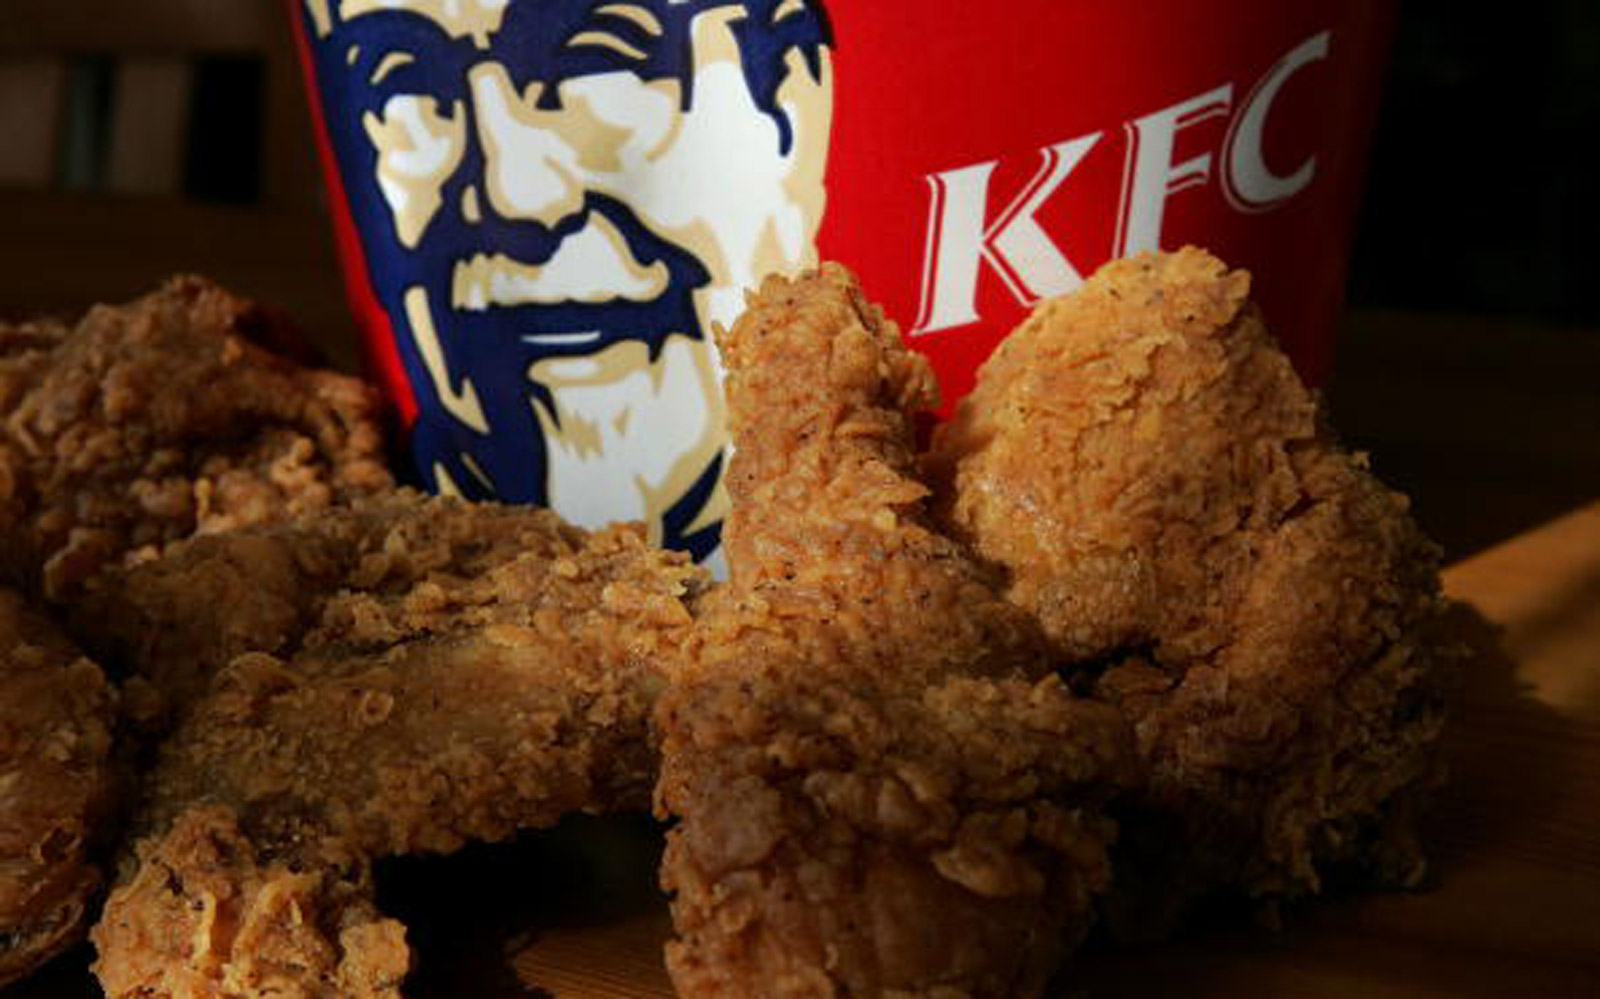 KFC Is Releasing Fried Chicken Scented Bath Bombs so You Can Smell like Fried Chicken